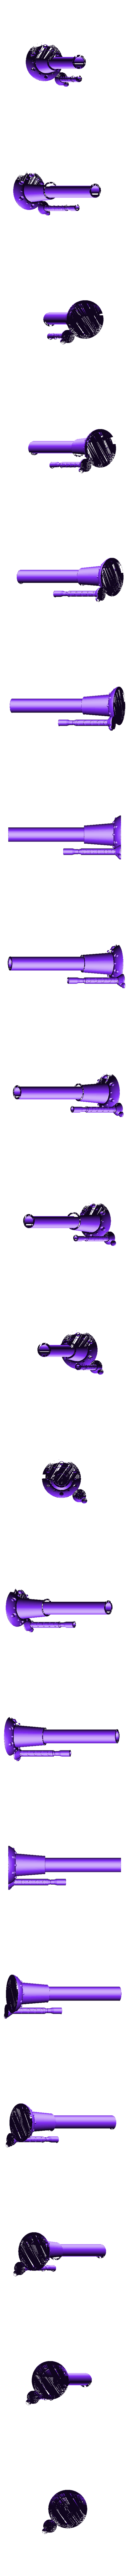 1_CANNON_NORMAL.stl Download free STL file IMPERIAL RAPID CANNON - ULTRA MEGA PACK ! • 3D printer template, yaemhay